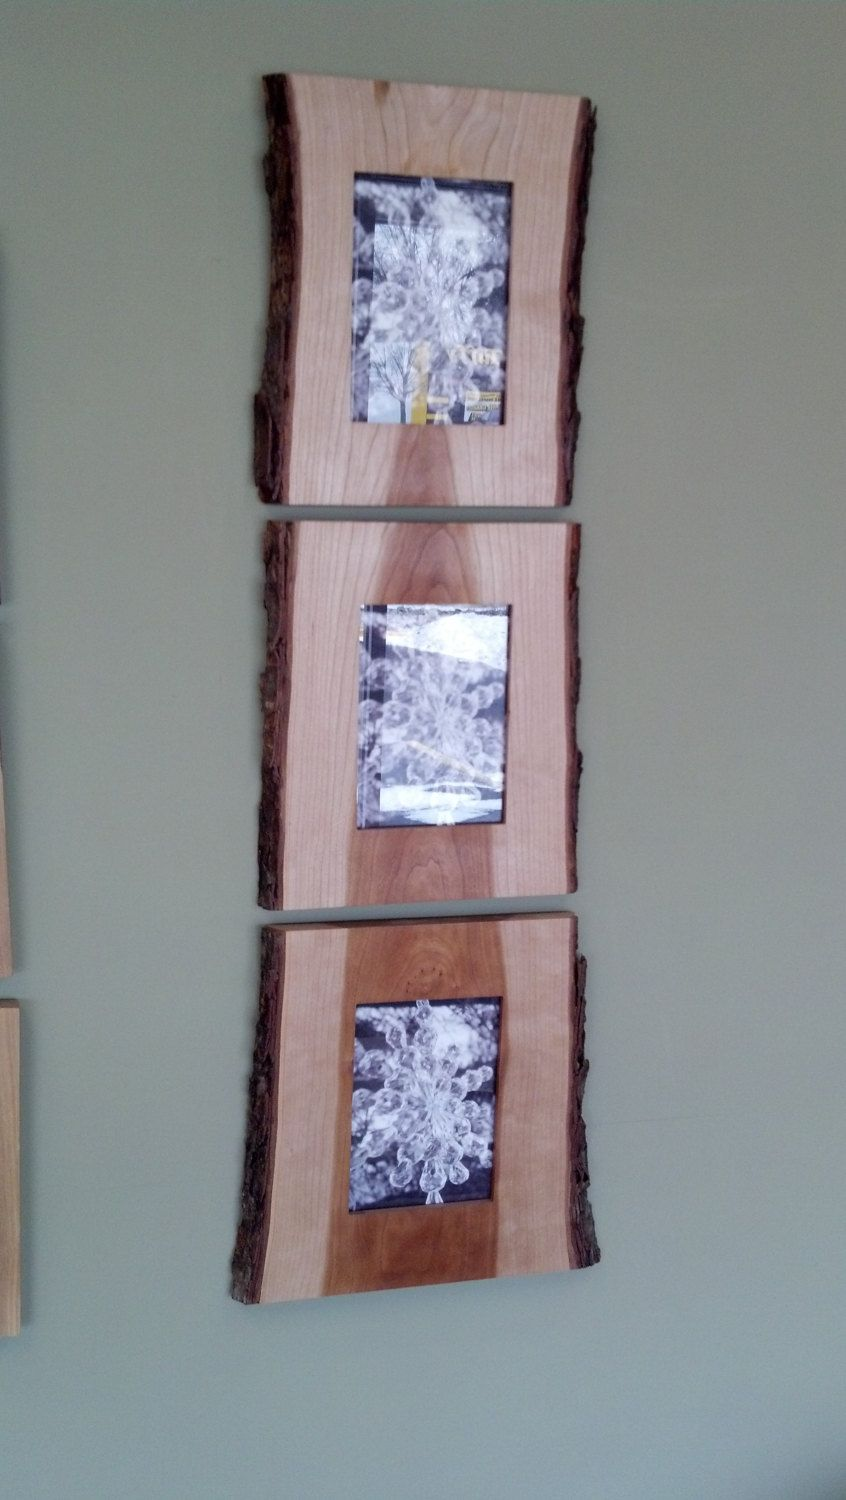 Live Edge Picture Frames | Troncos, Madeira y Madera